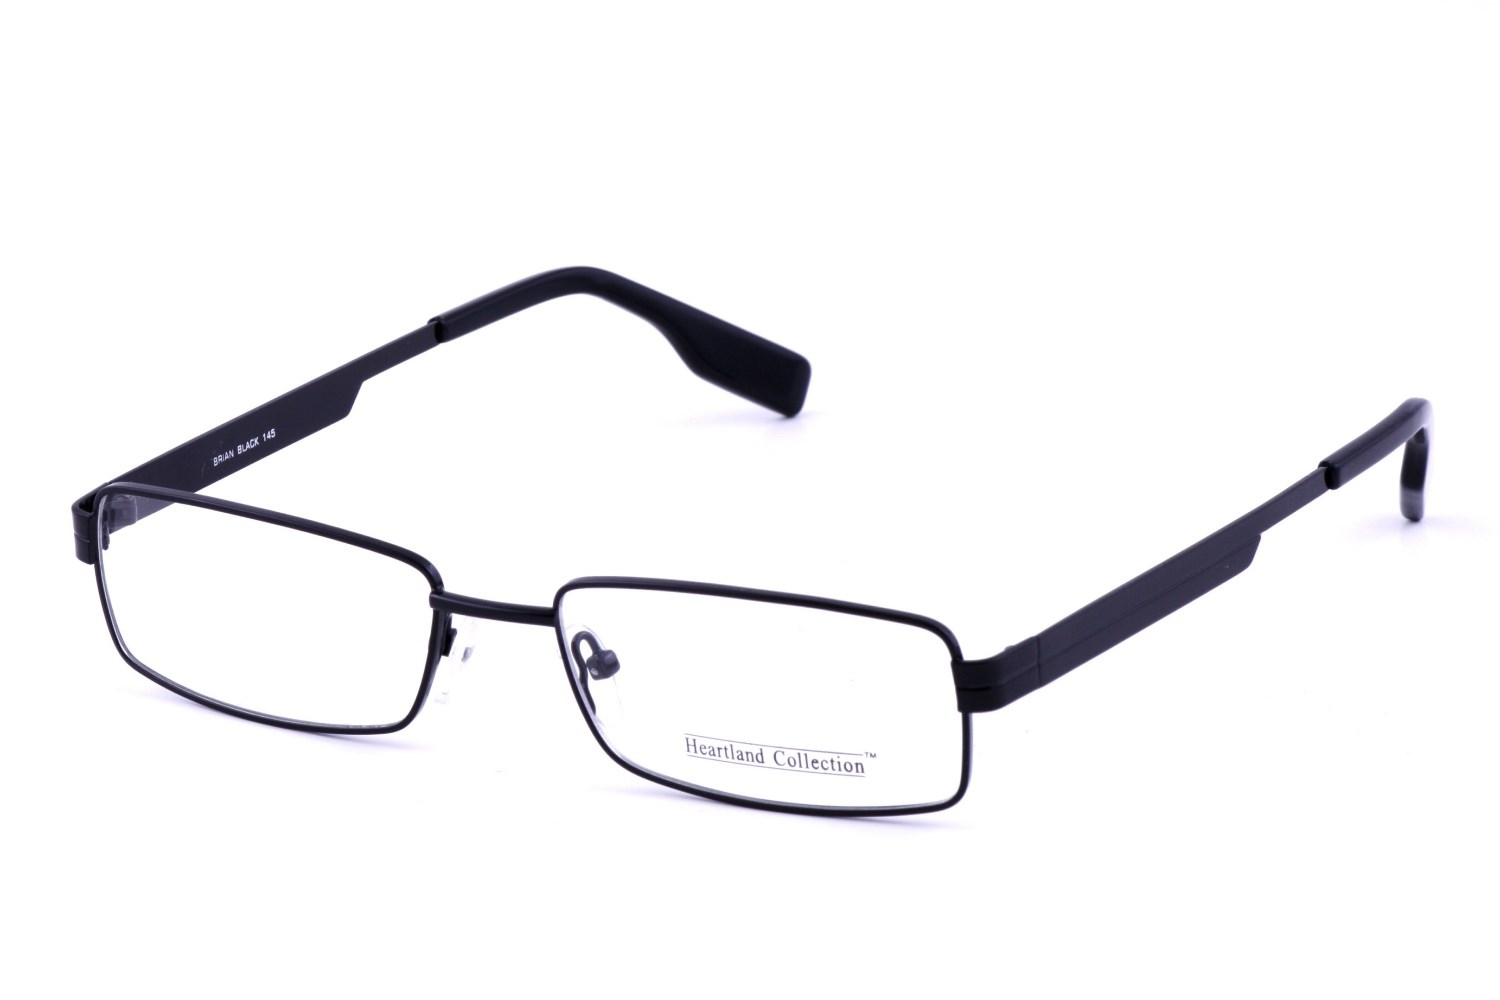 Heartland Brian Prescription Eyeglasses Frames